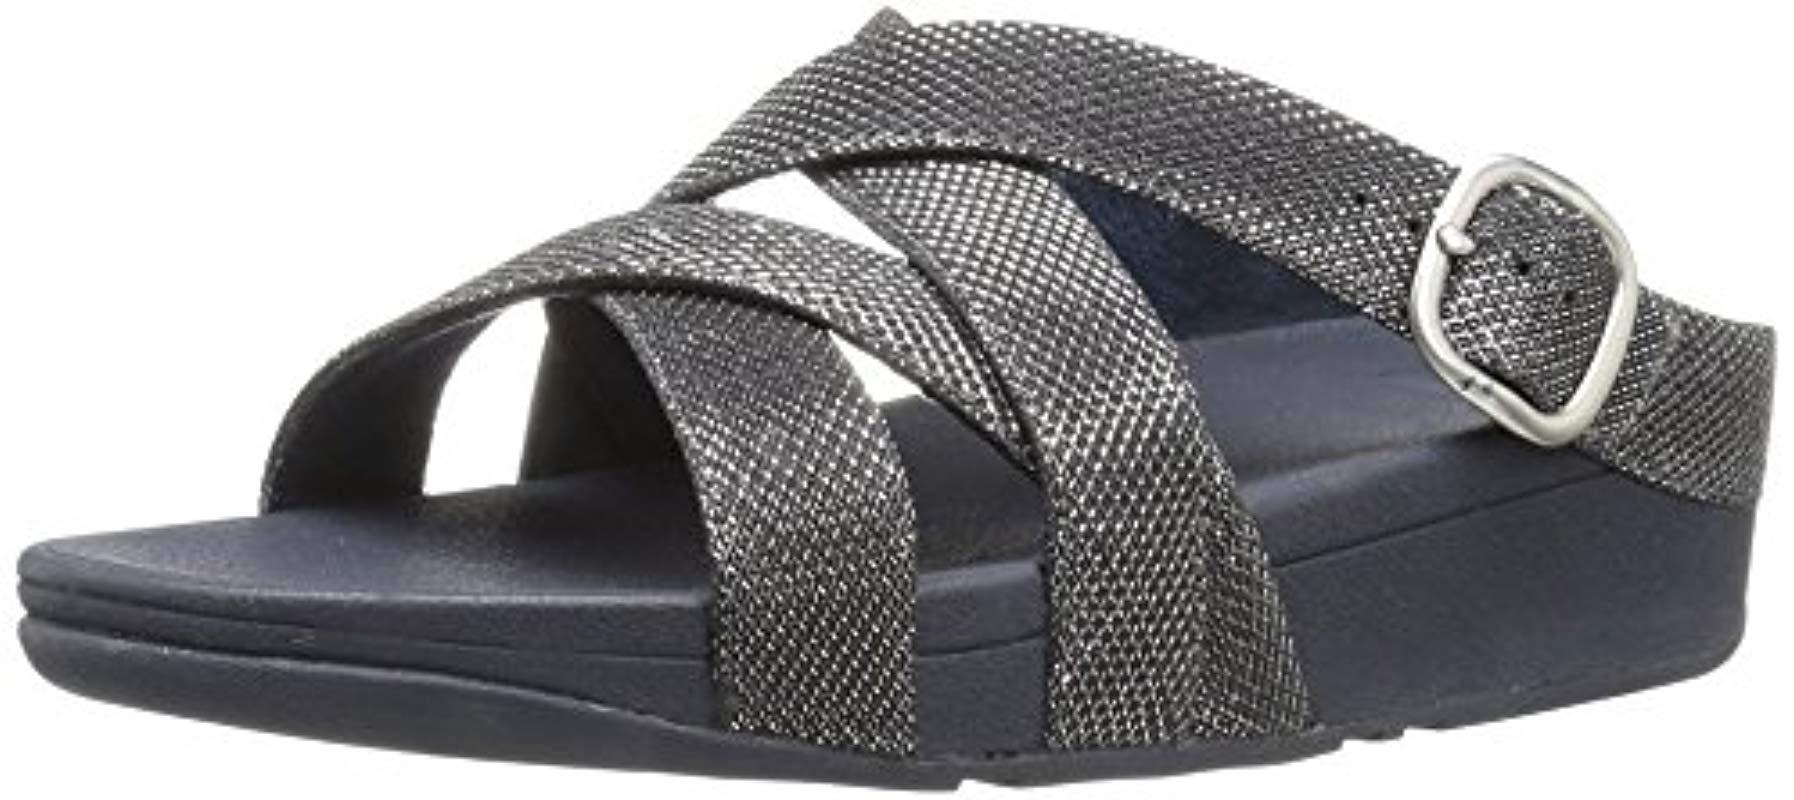 41ccb2d8bc3cc2 Lyst - Fitflop The Skinny Sparkle Criss-cross Slide Flip Flop